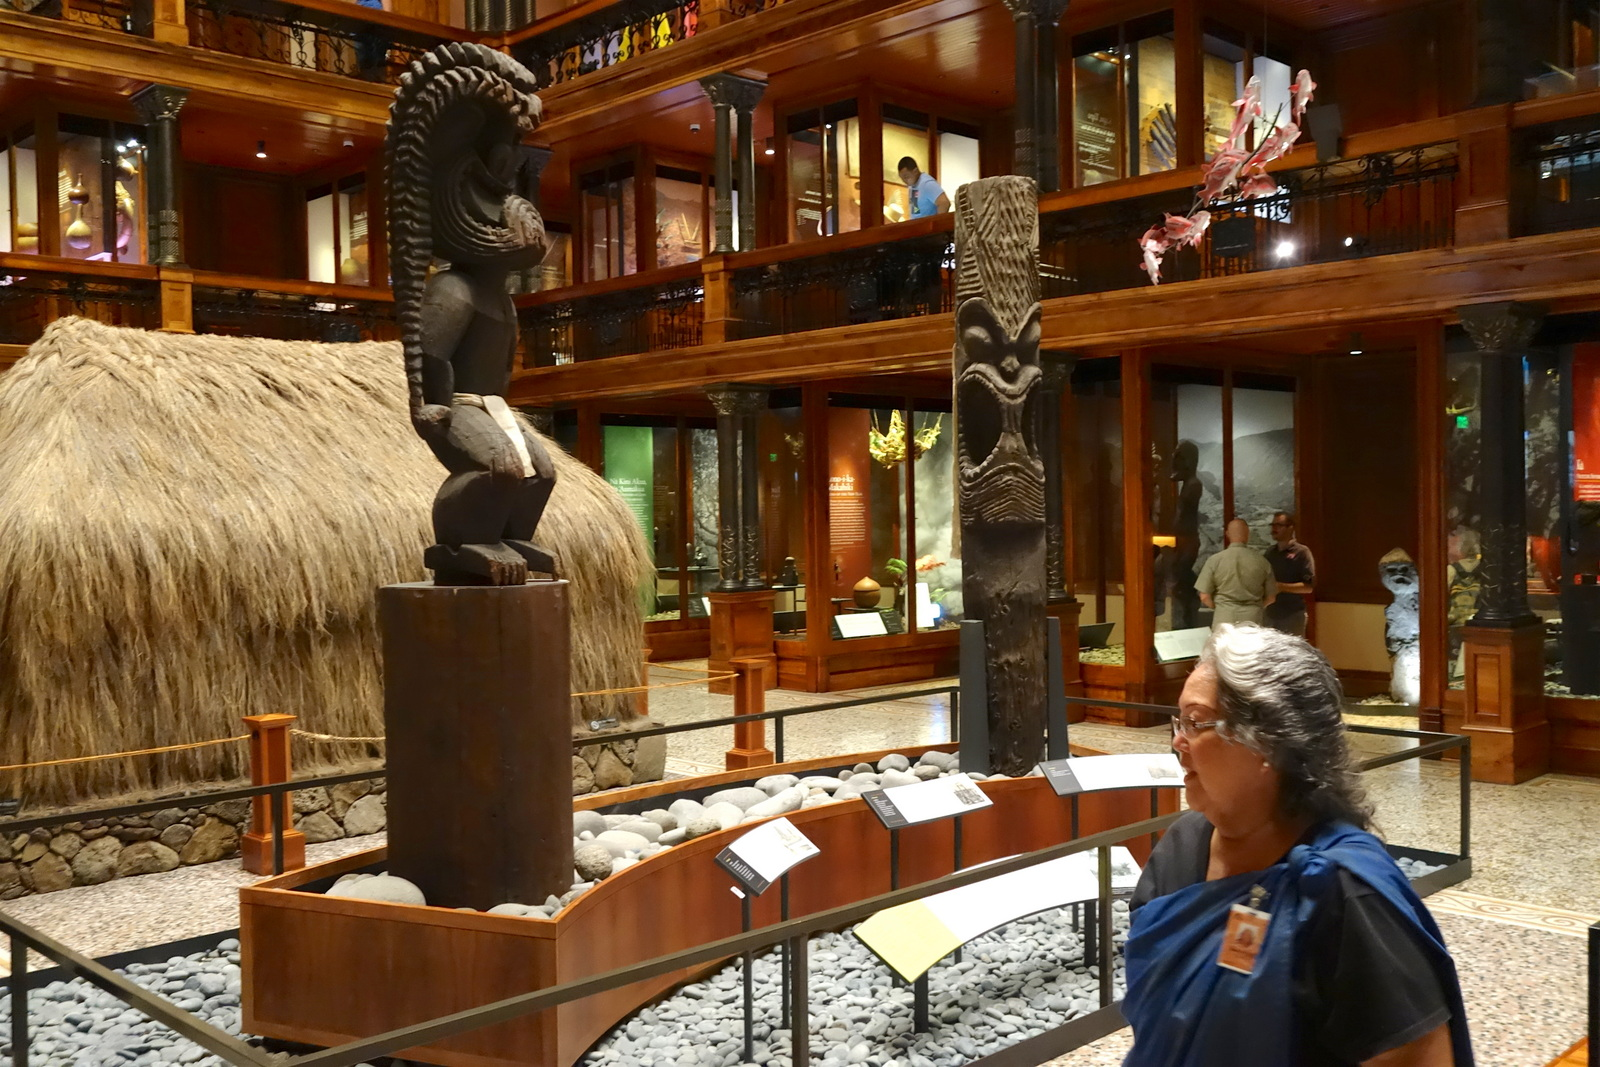 Hawaiian Hall, Bishop Museum. From Digging Deeper into Hawaiian History on the Hawai'i Monarchs Tour